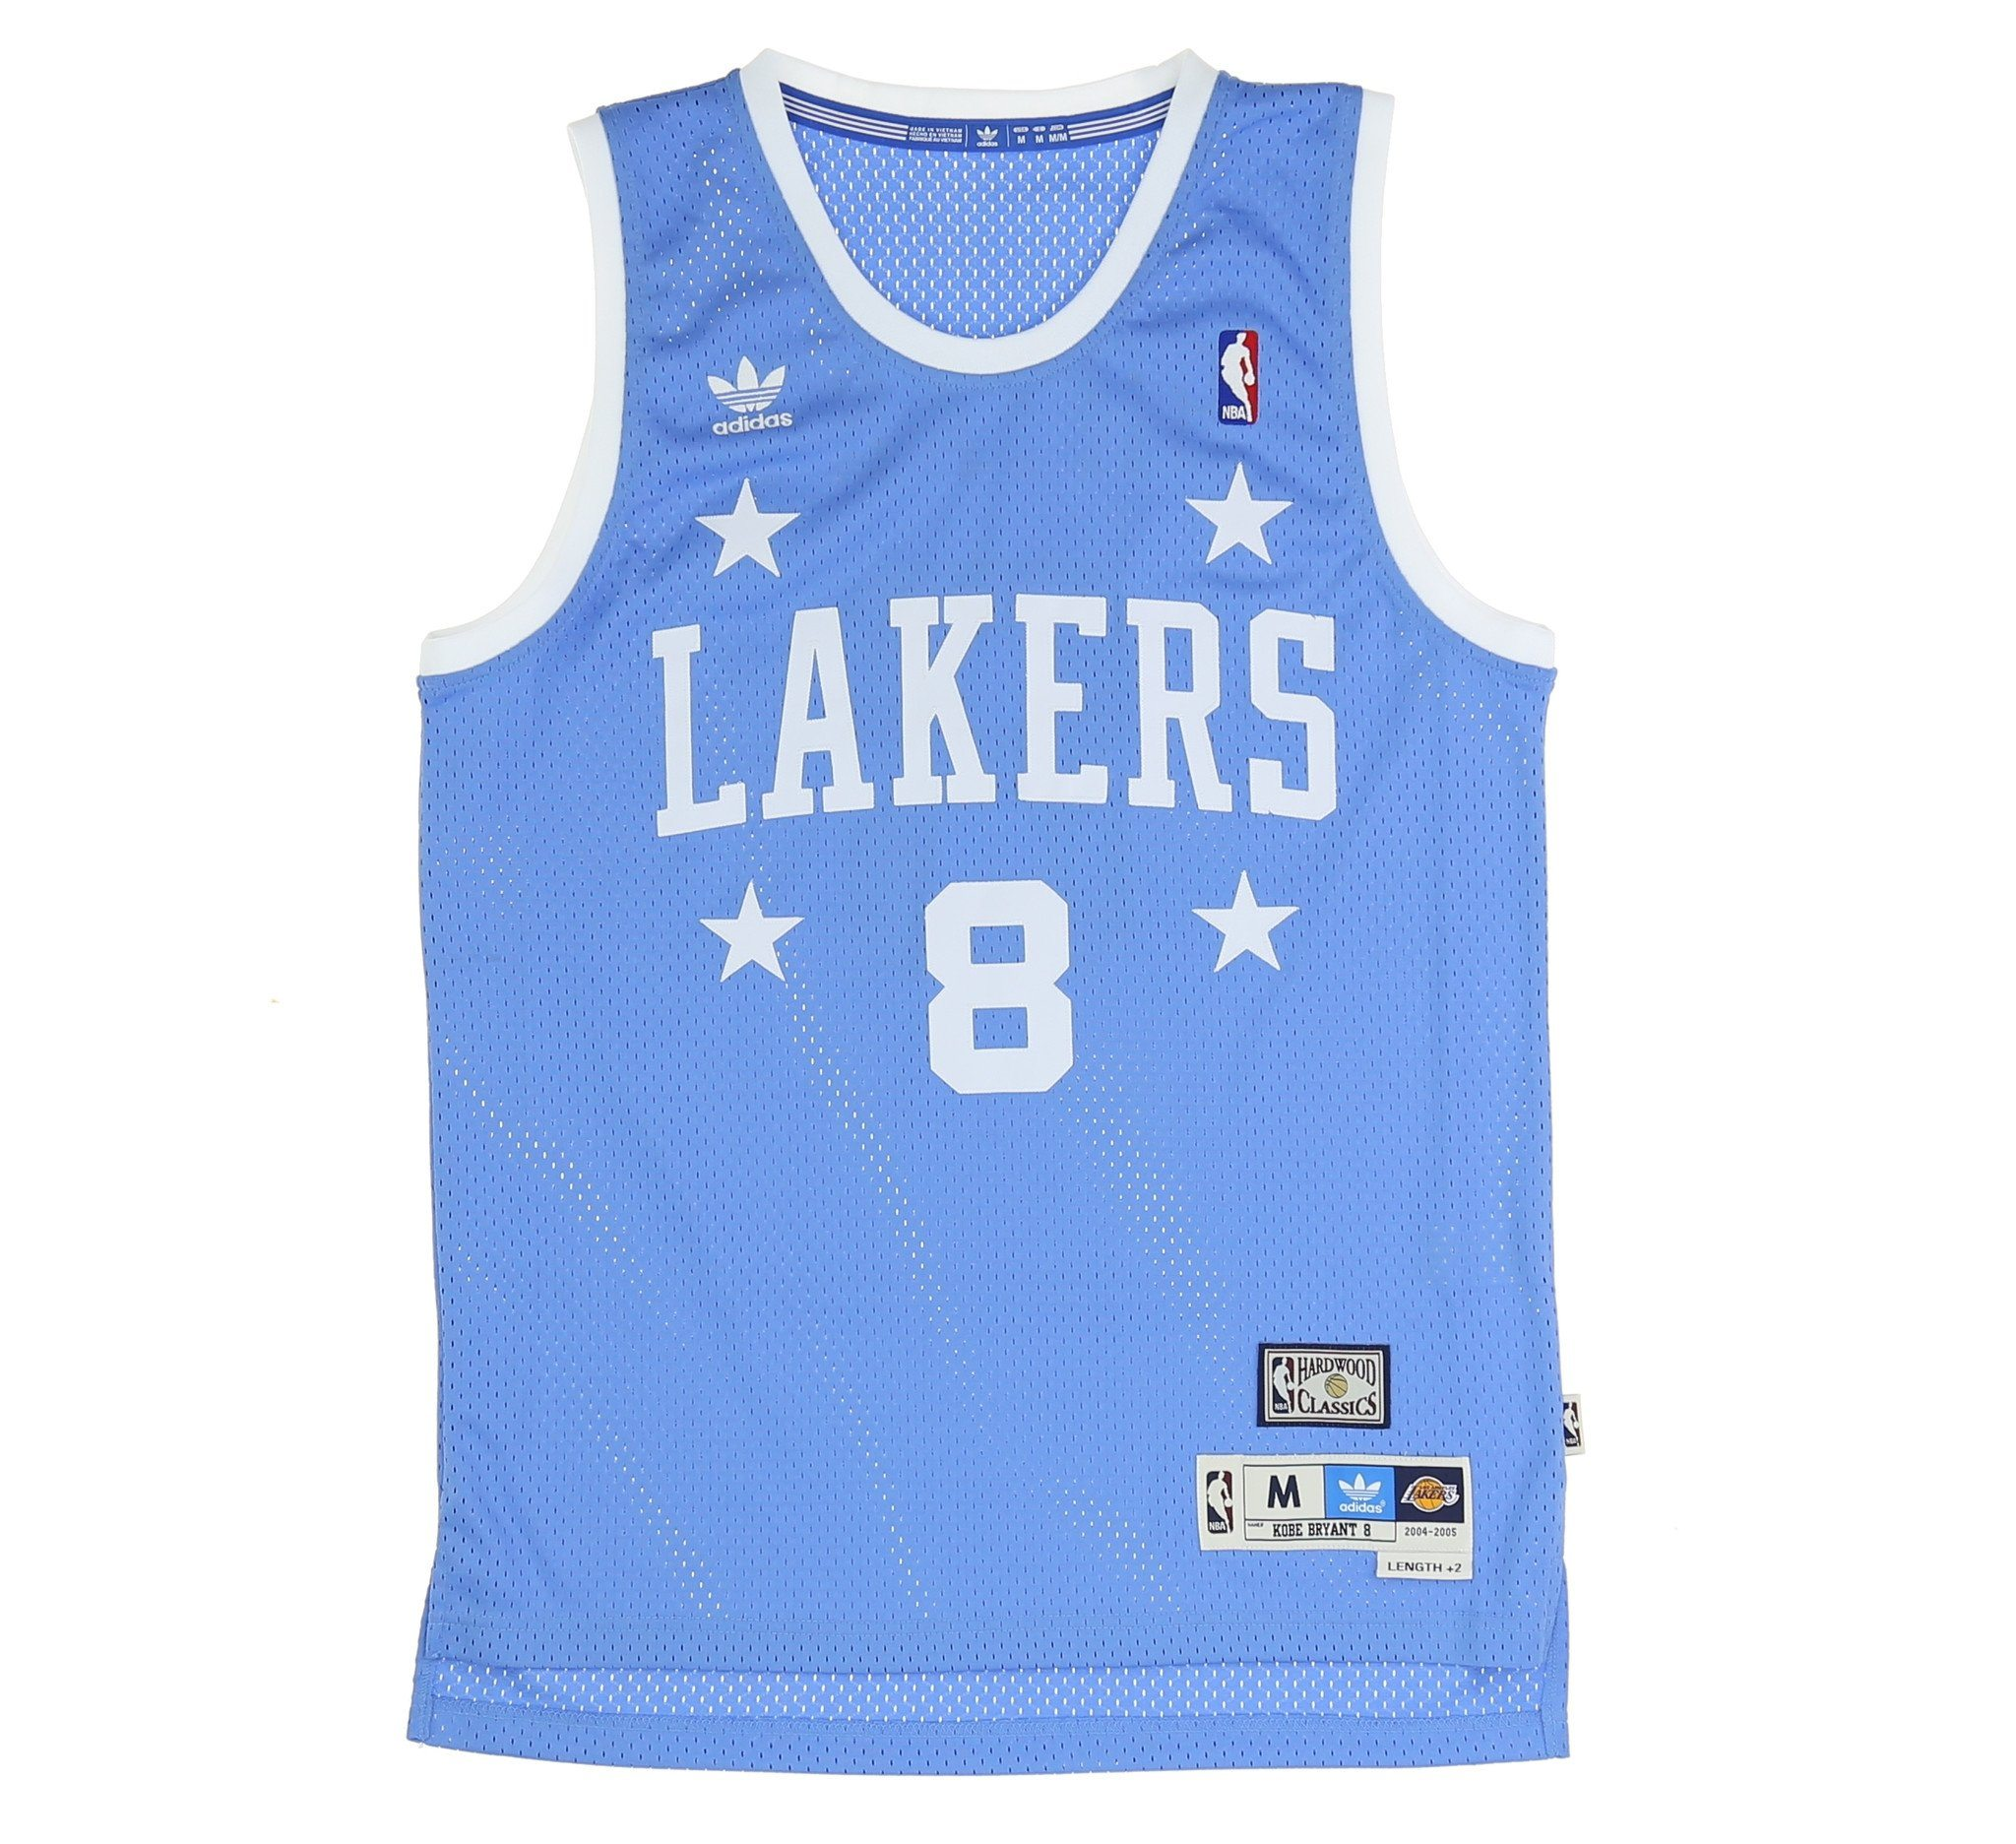 7abb43e1 LAKERS #8 KOBE BRYANT NEW SOUL JERSEY – SHOPATKINGS